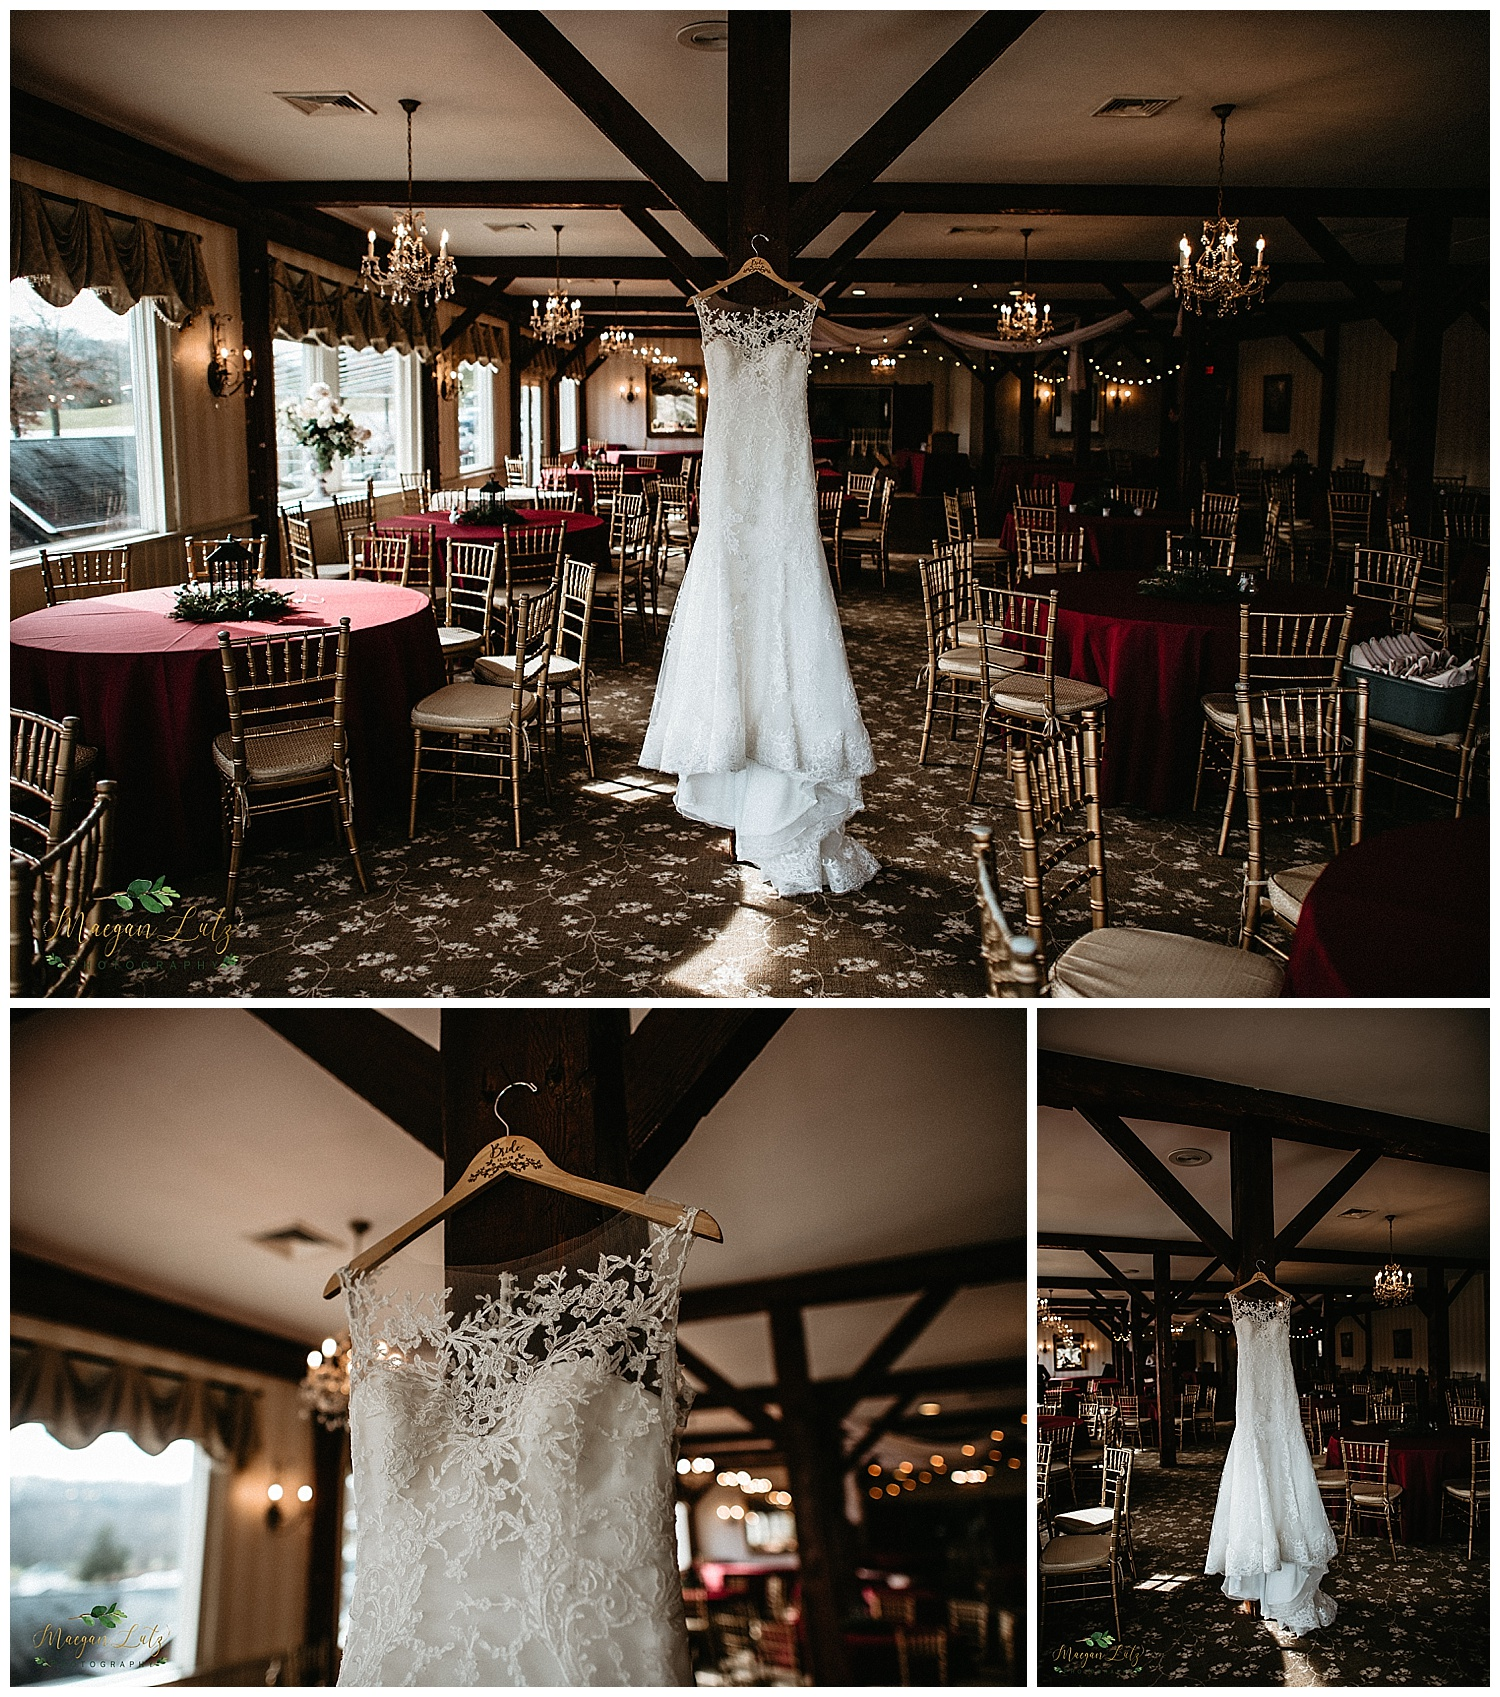 NEPA-wedding-photographer-at-Farmstead-Golf-and-country-club-LaFayette-Township-New-Jersey_0003.jpg